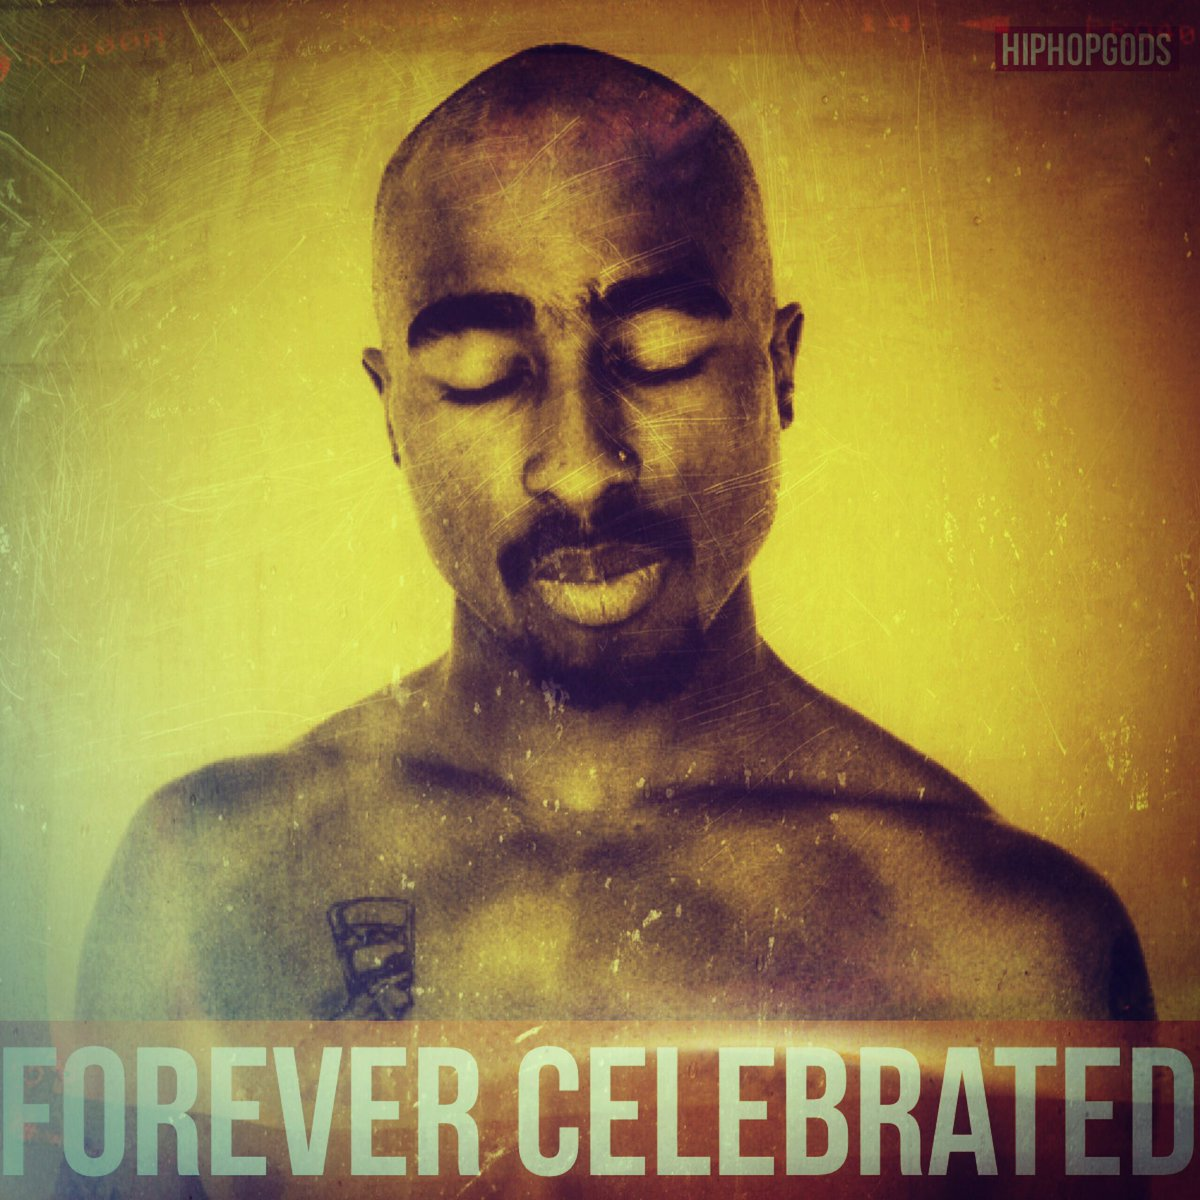 Clearly remember being in L.A. twenty years ago when the terrible news broke. R.I.P. 2Pac - forever celebrated. https://t.co/RN7QbDgwL2